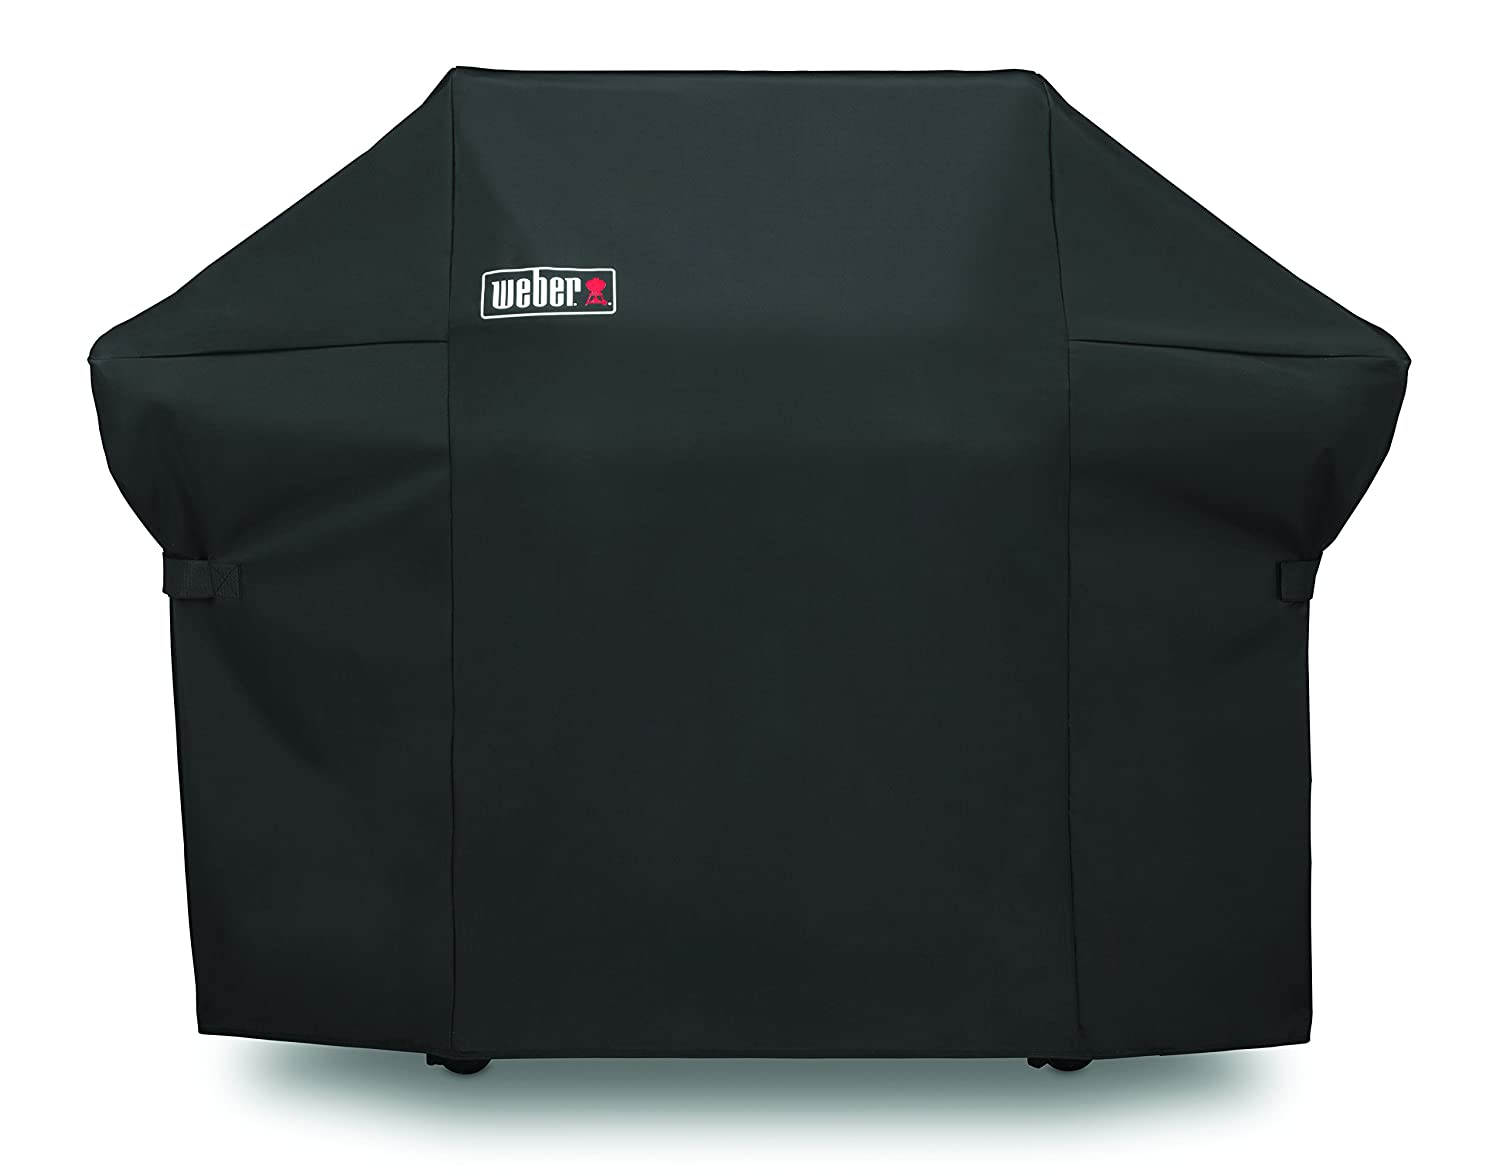 Weber 7108 gas Grill Cover with Storage Bag for Summit 400 Series Gas Grills